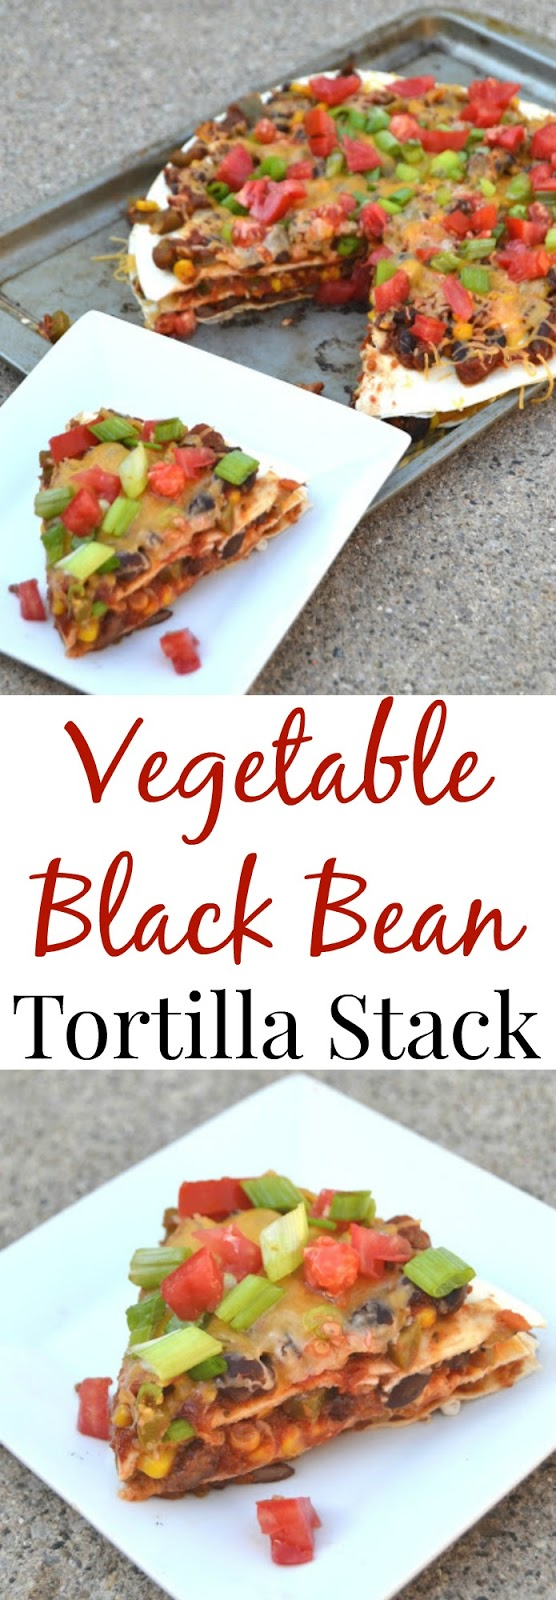 Vegetable Black Bean Tortilla Stack- a layered tortilla stack with sauteed fajita vegetables and black beans! www.nutritionistreviews.com